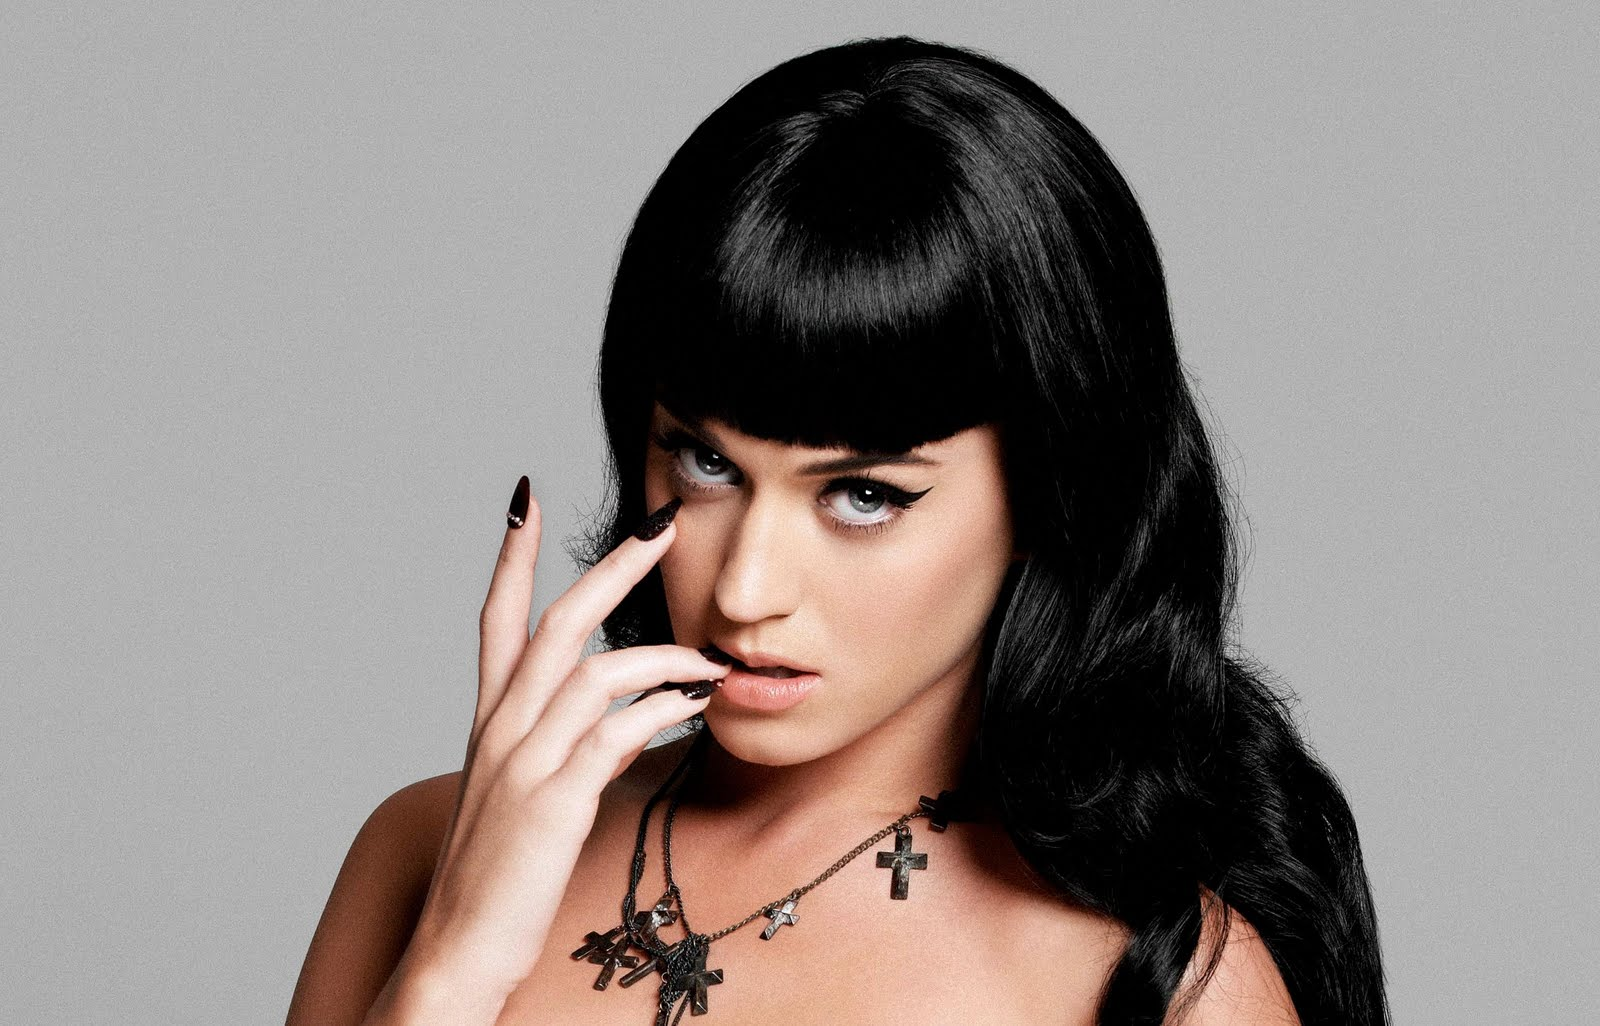 Katy Perry Hairstyles, Long Hairstyle 2011, Hairstyle 2011, New Long Hairstyle 2011, Celebrity Long Hairstyles 2108